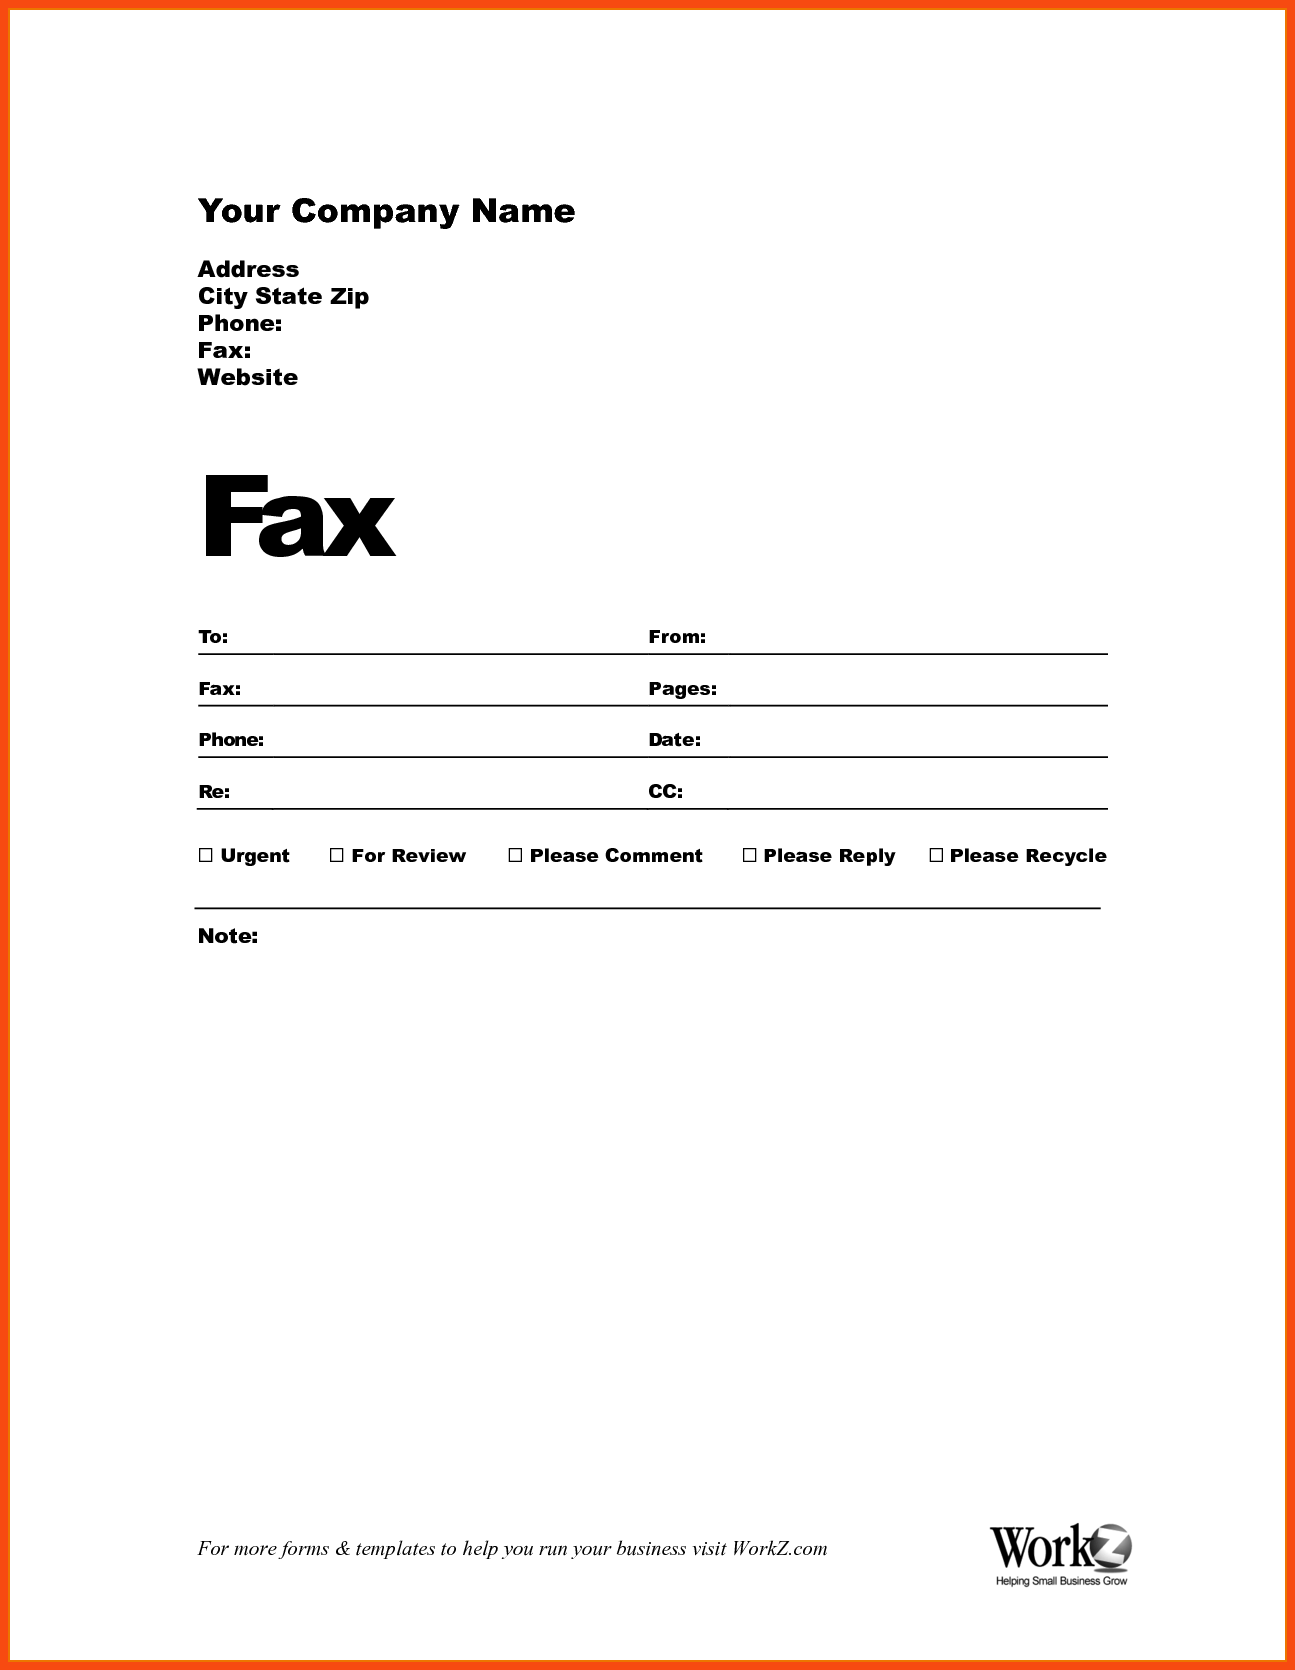 fax cover letter sample how to fill out a fax cover sheet free fax cover 21685 | fax cover sheet template fax cover sheet sample 68991989